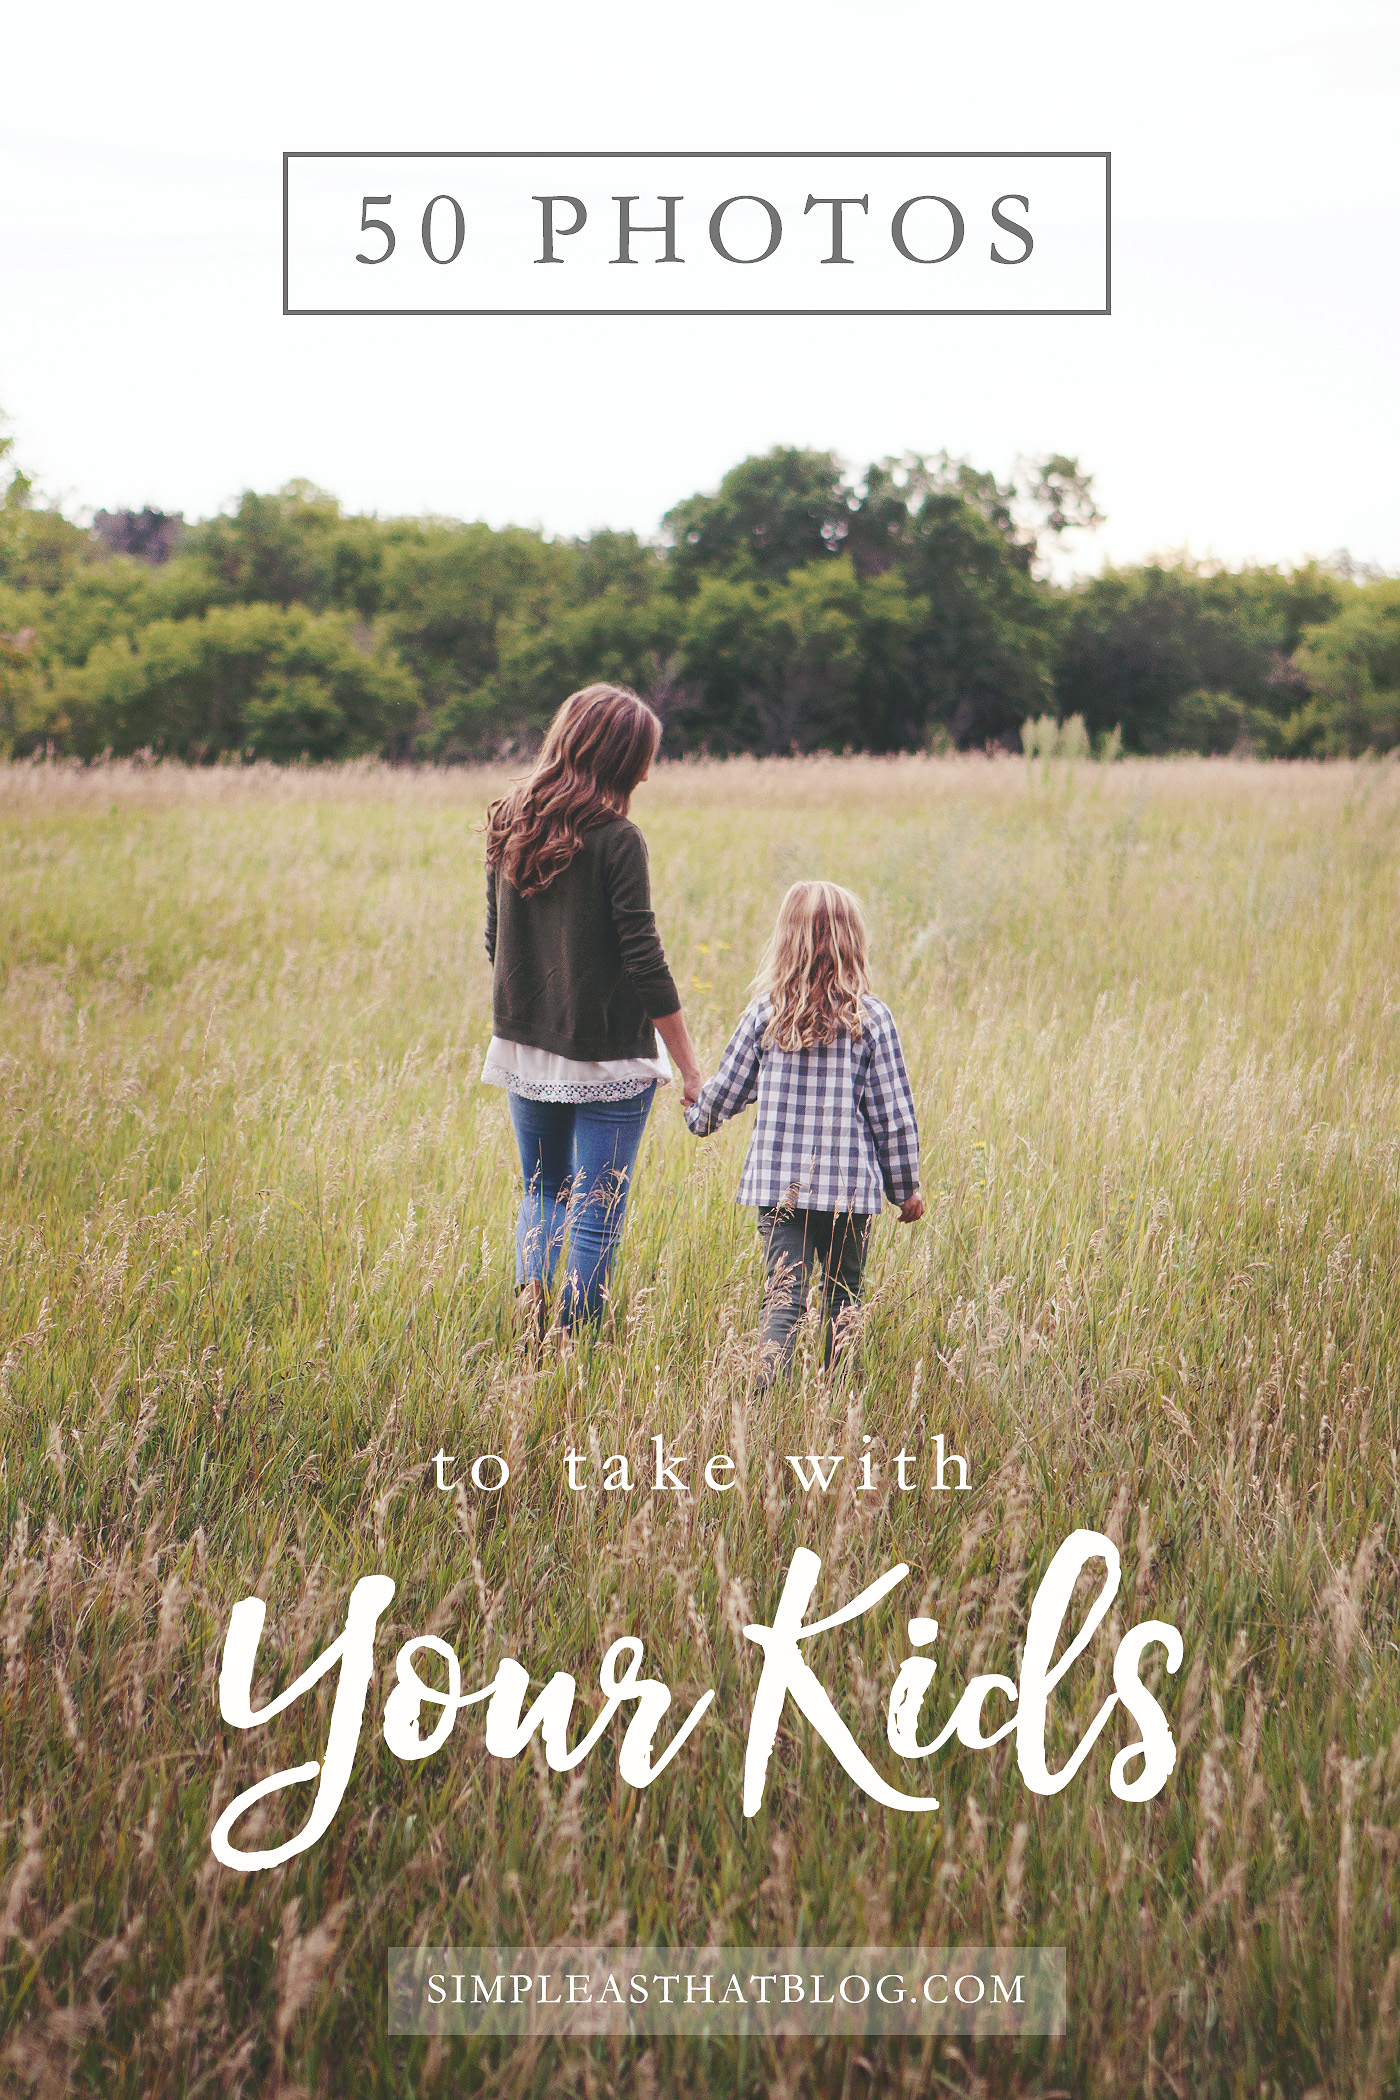 YOU are part of your children's story. An essential part, in fact. Are your family photos reflecting this? Time to get out from behind the camera Mama!